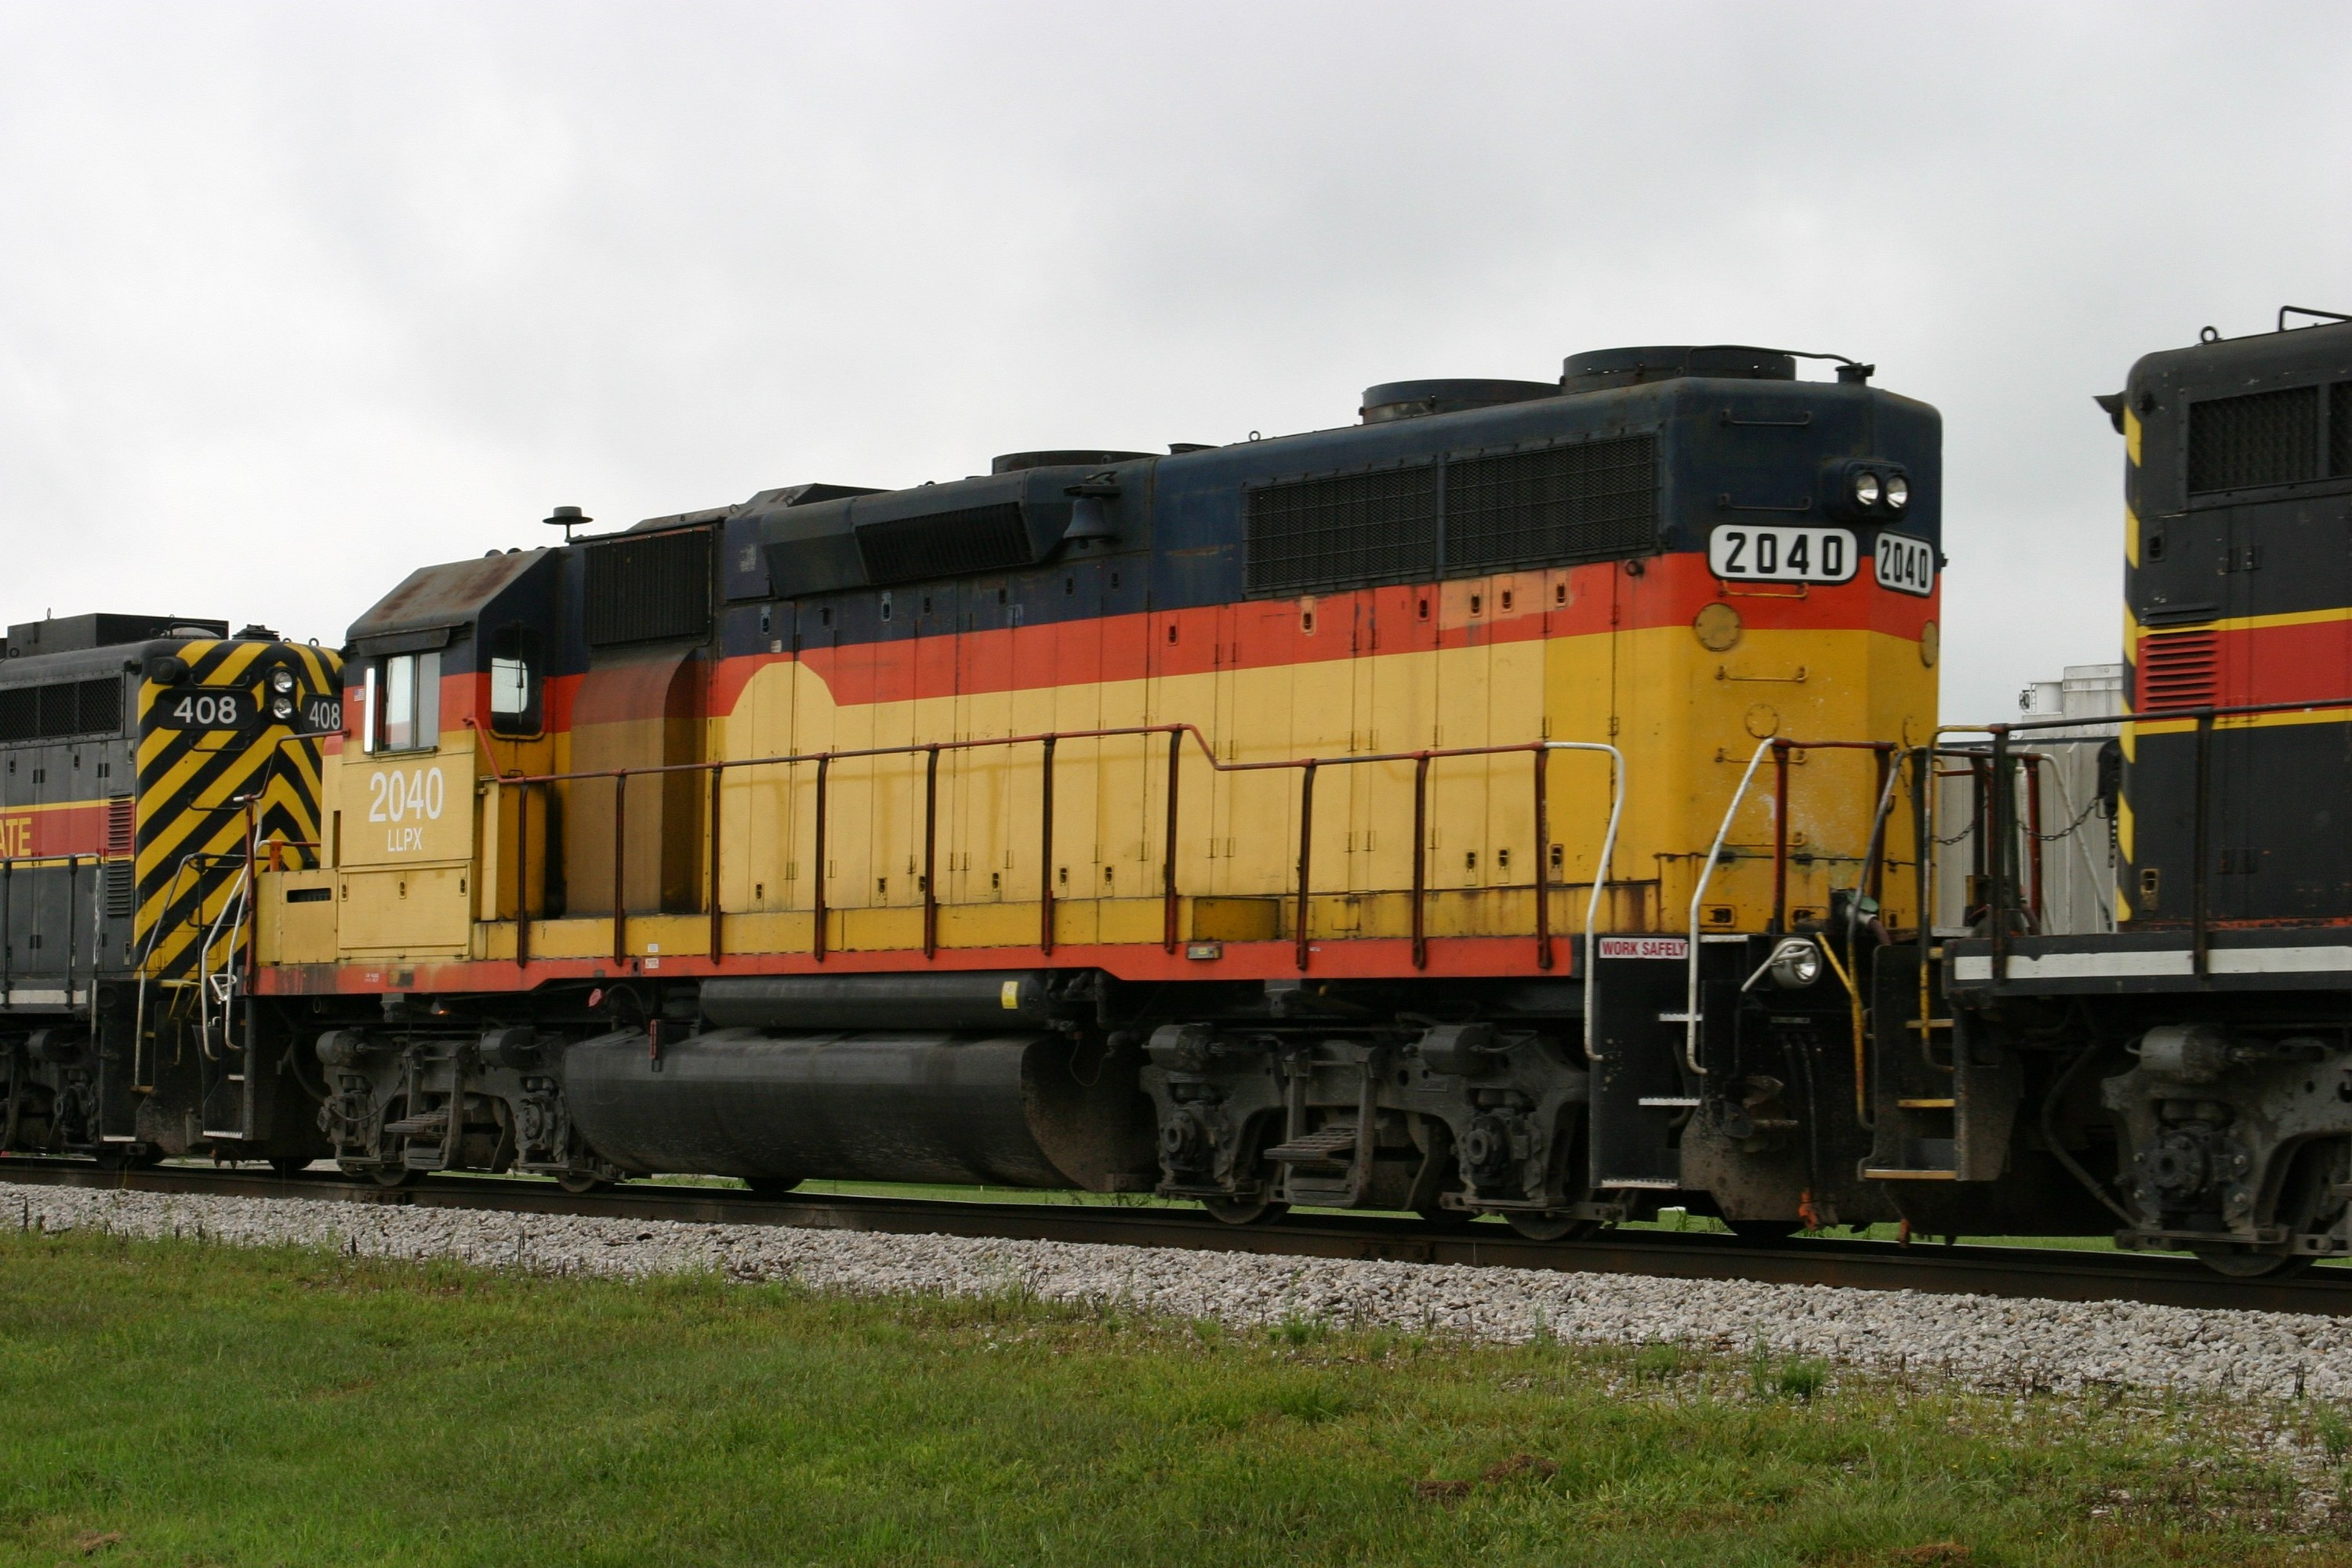 LLPX 2040 at Wilton, IA on 28-Aug-2004